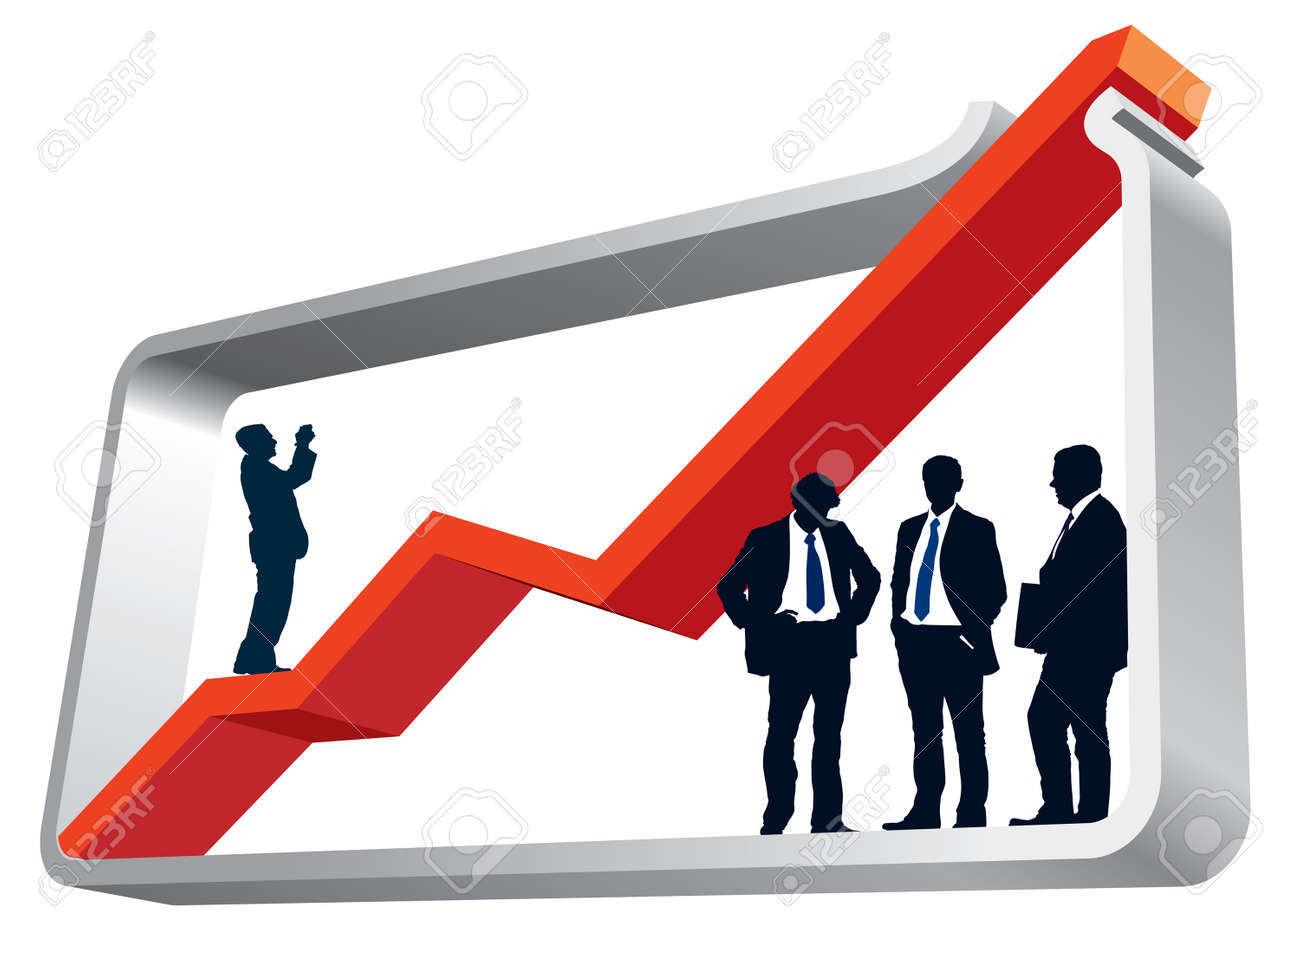 Businesspeople are standing in a large graph, conceptual business illustration. Stock Vector - 3947186